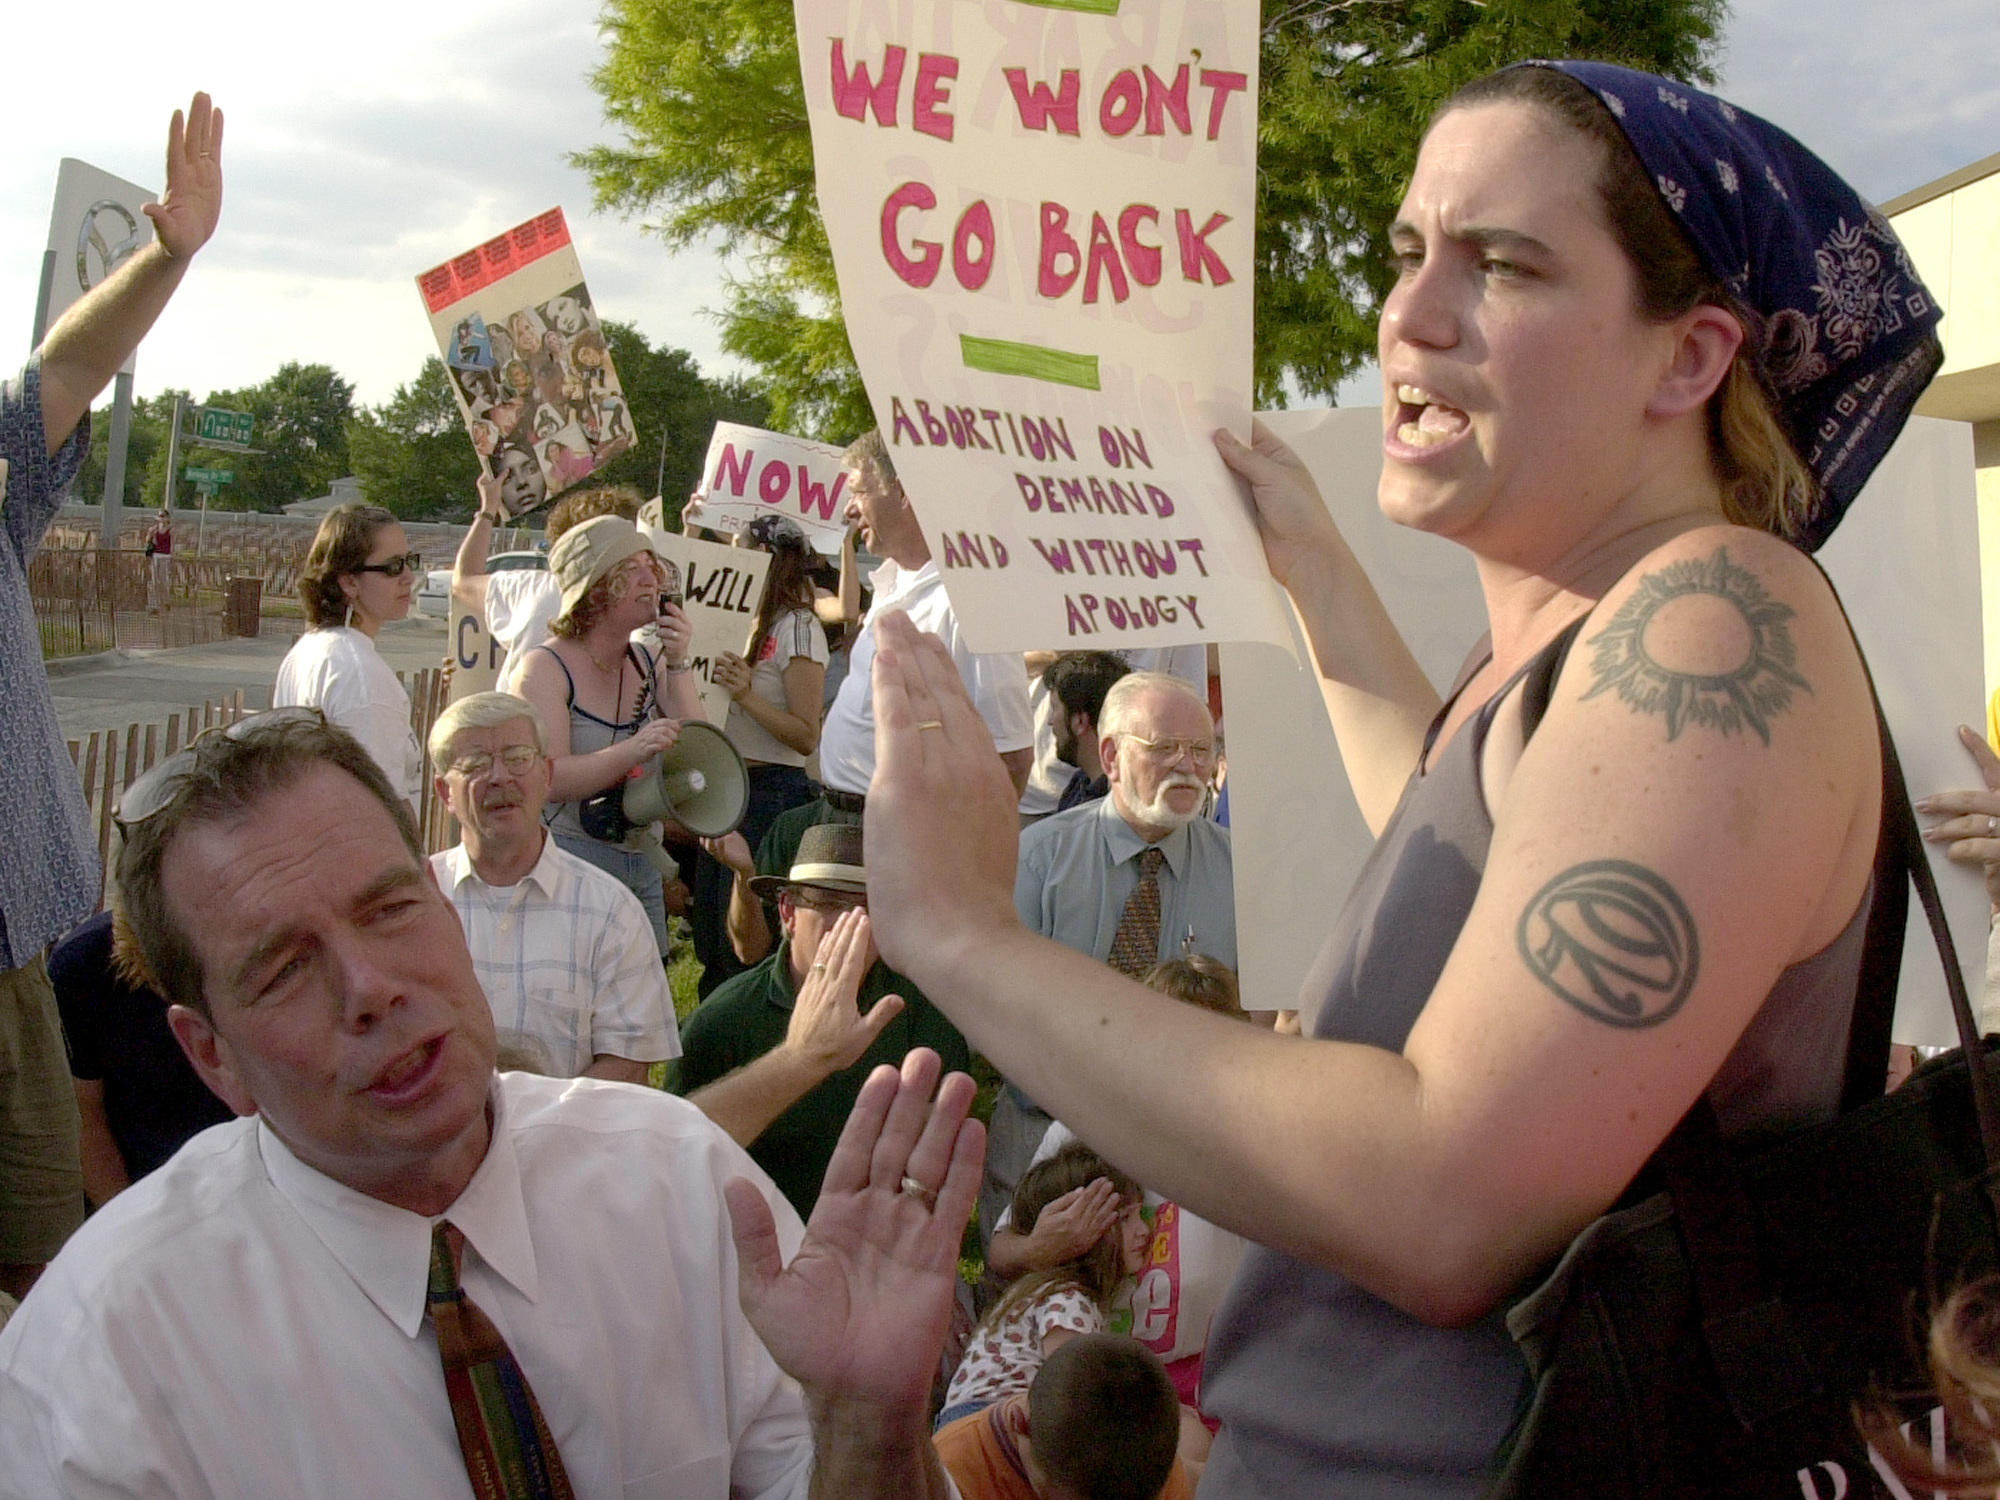 Abortion-rights activist Karen Nicholls confronts anti-abortion leader the Rev. Flip Benham in 2001 during protests by the two groups at a Wichita Kan. medical clinic operated by Dr. George Tiller who performed abortions